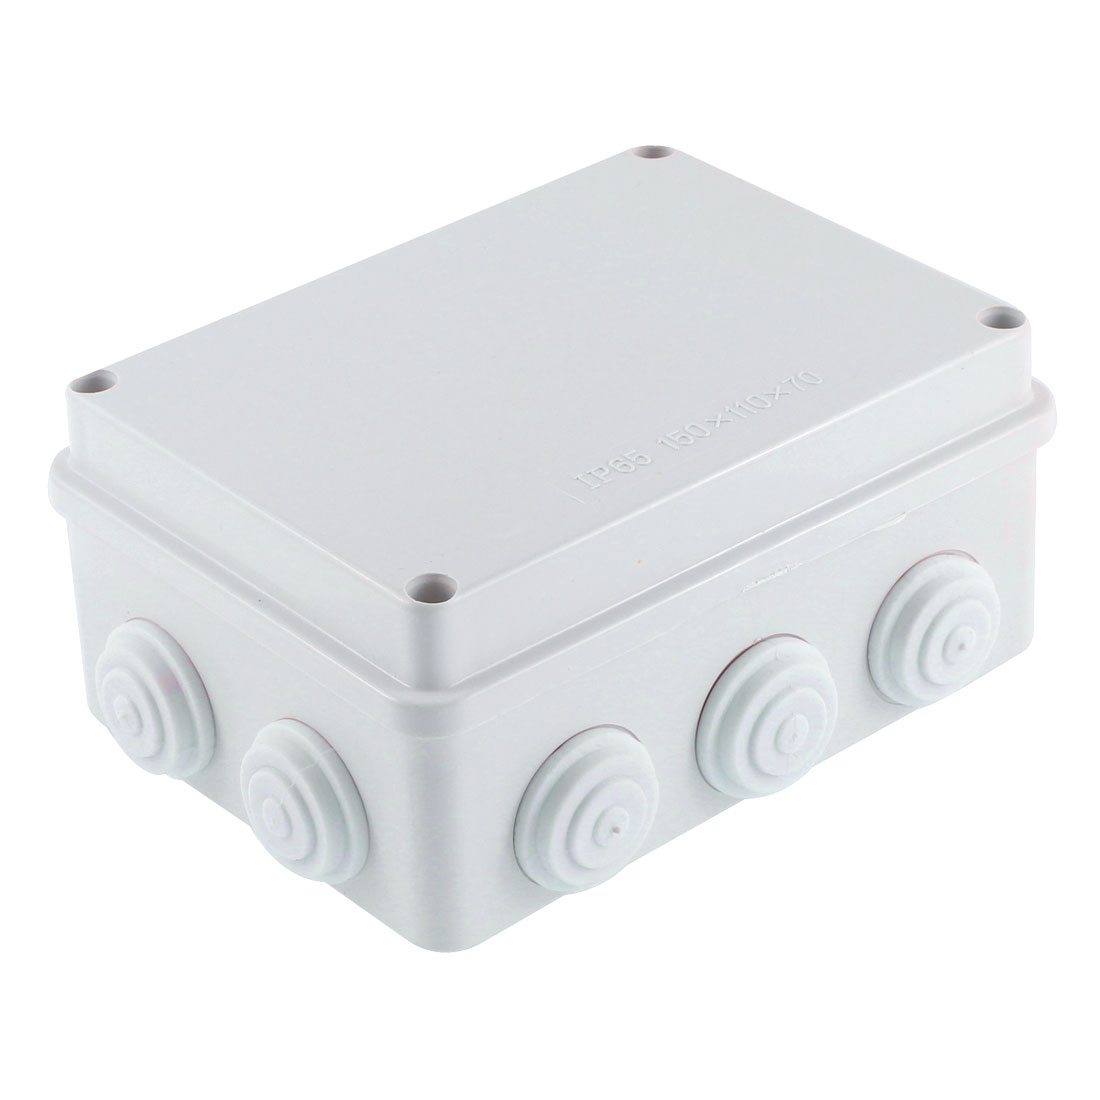 150mmx110mmx70mm Cable Connect Plastic Enclosure Case DIY Junction Box